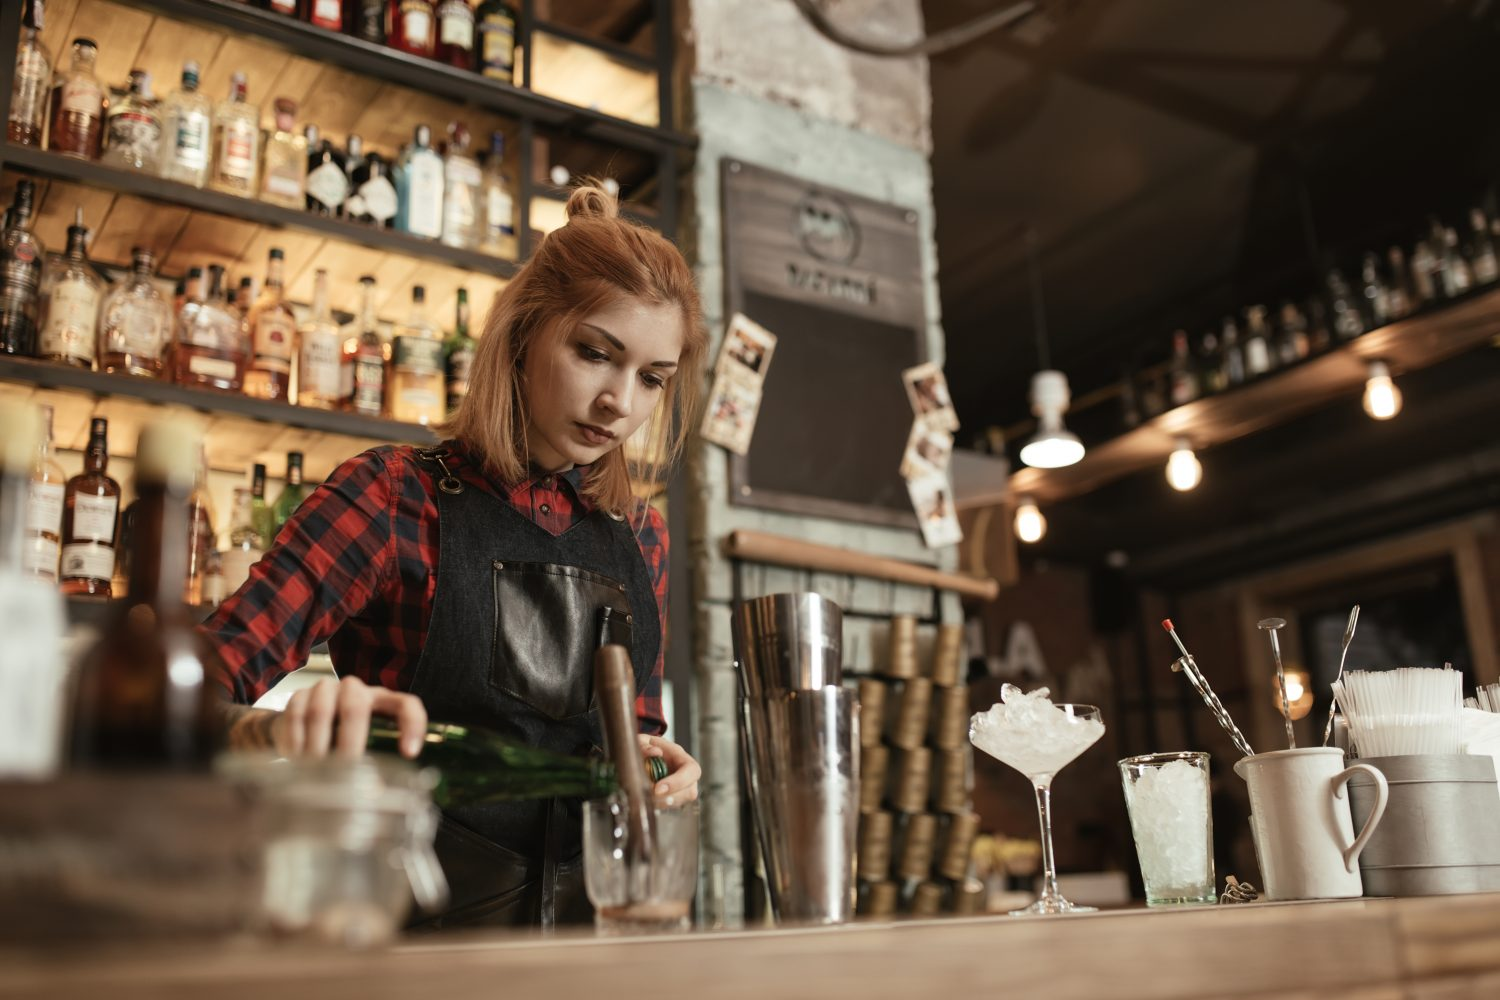 Woman bartender making an alcohol cocktail at the bar